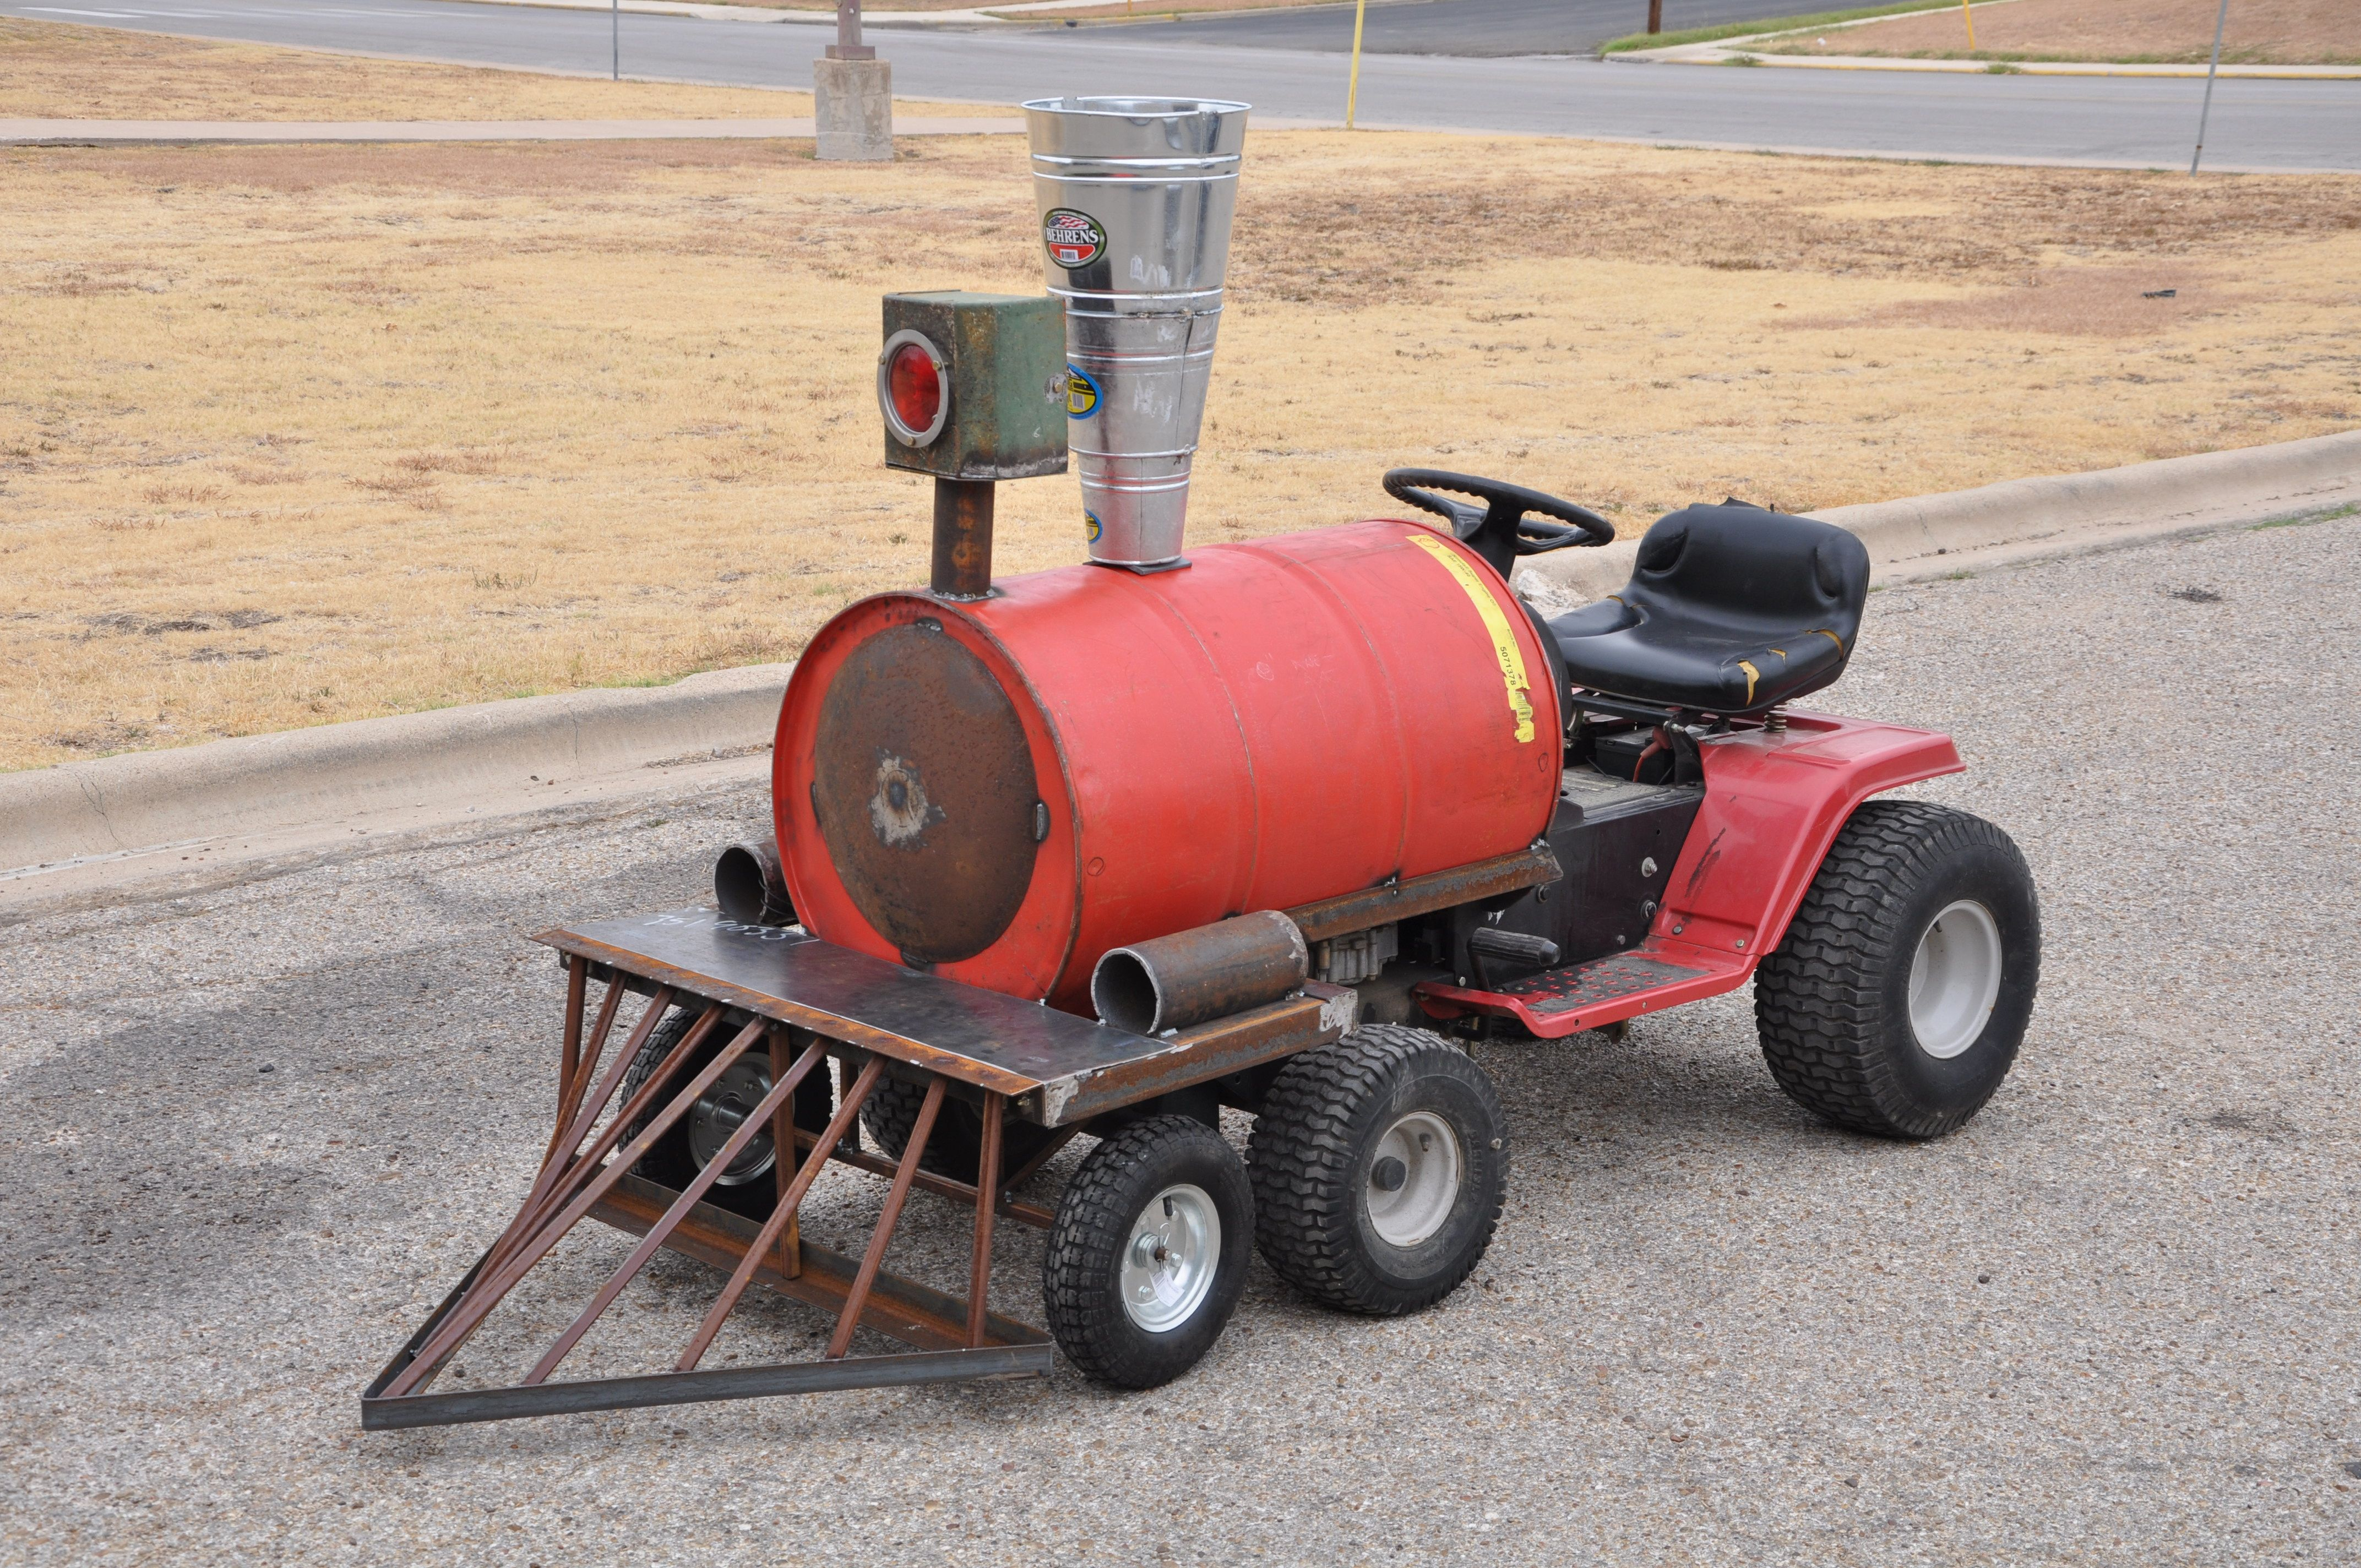 Lawnmower Trackless Train Stuff Already Been Built In 2018 Diy Electric Tractor Page 3 Of 4 Barrel Homemade Party Kids Wagon